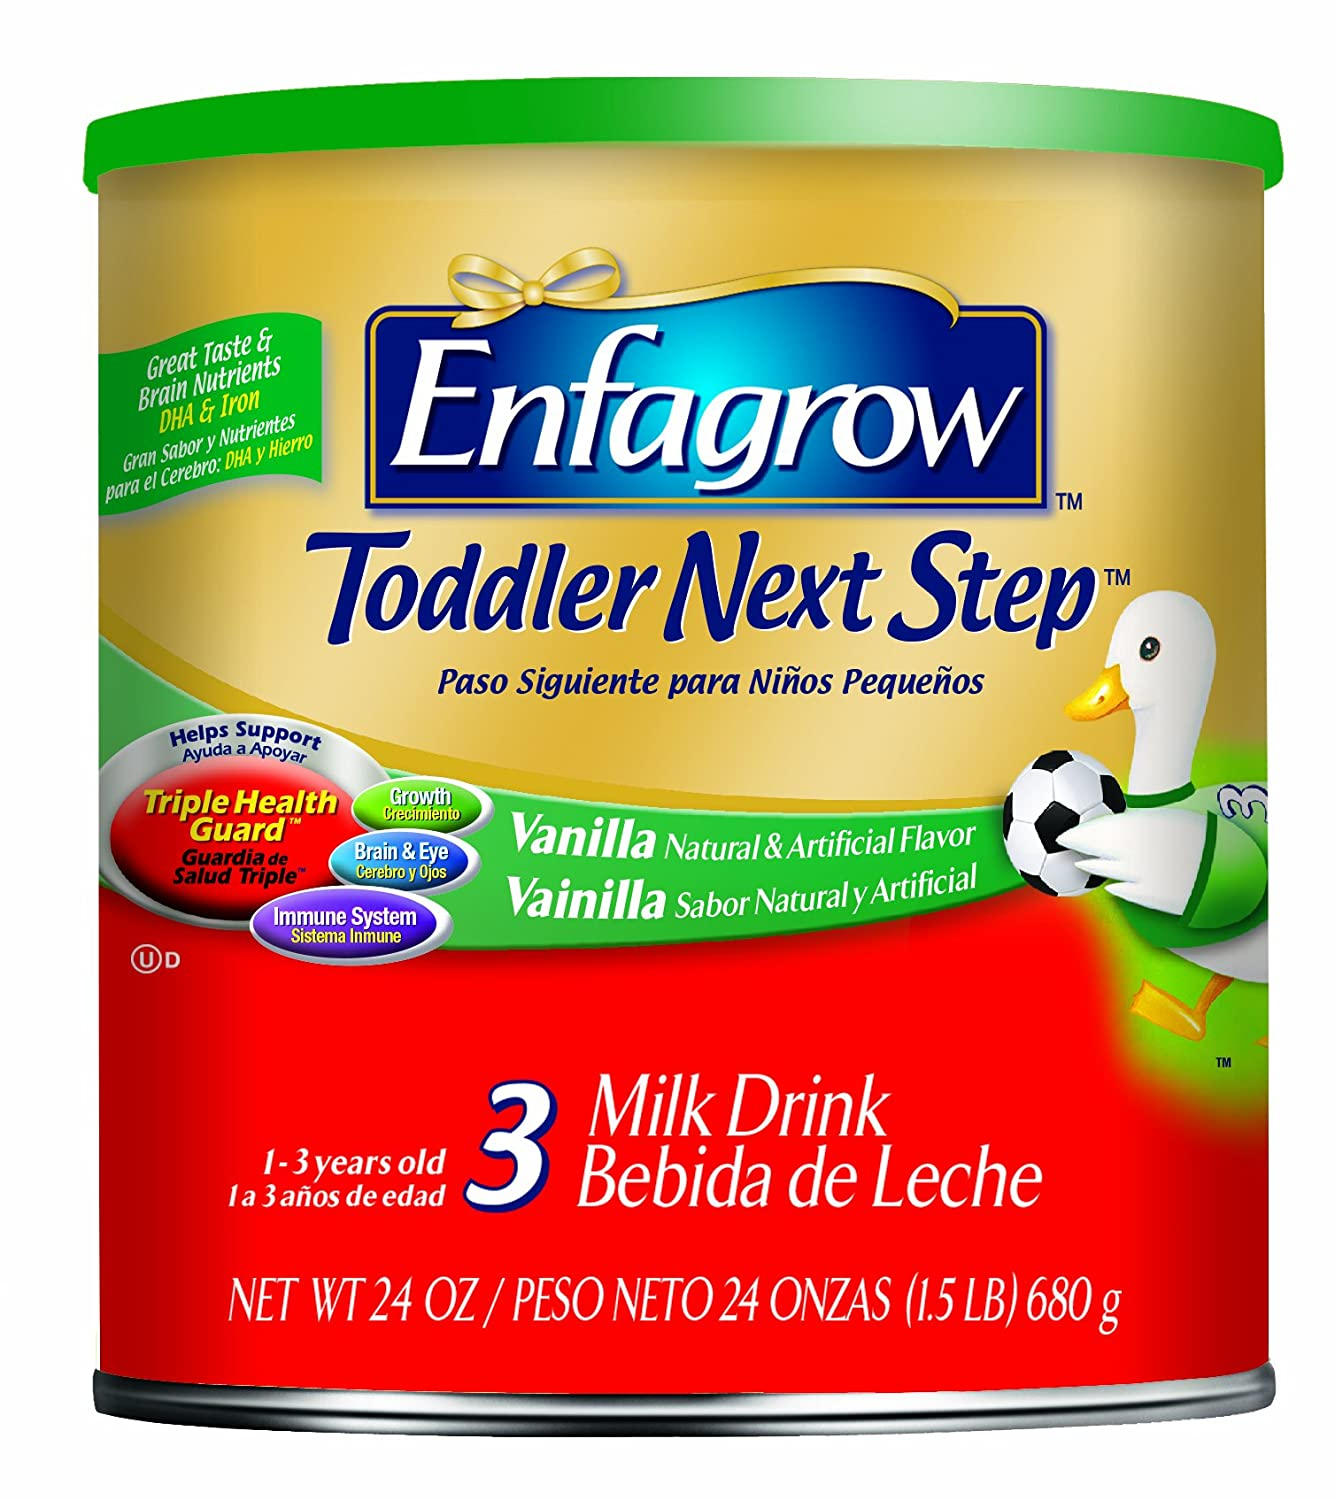 Amazon.com: Enfagrow Toddler Next Step Vanilla, for Toddlers 1 Year and Up 72 Ounce: Health & Personal Care